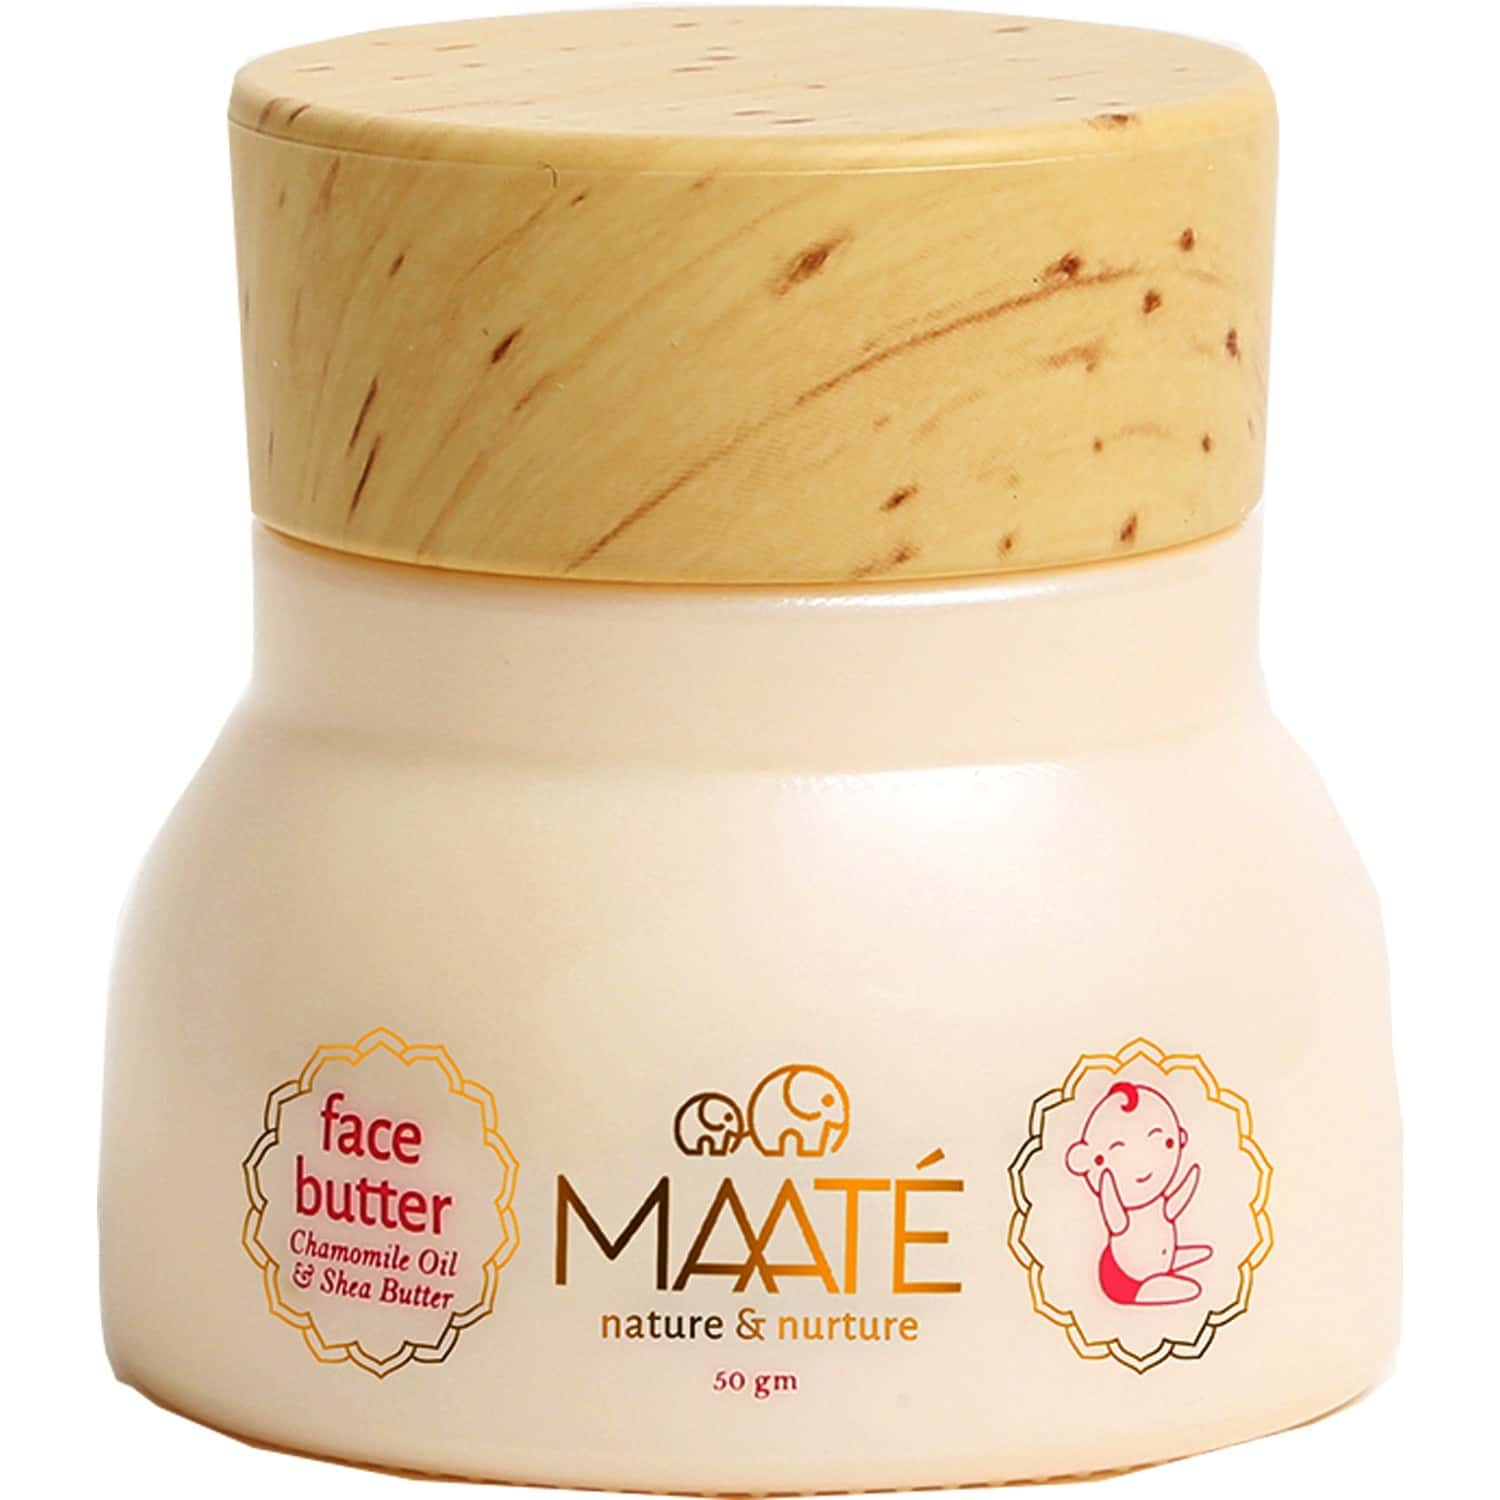 Maate Baby Face Butter Fast Absorbing Baby Face Cream - 50 Gm